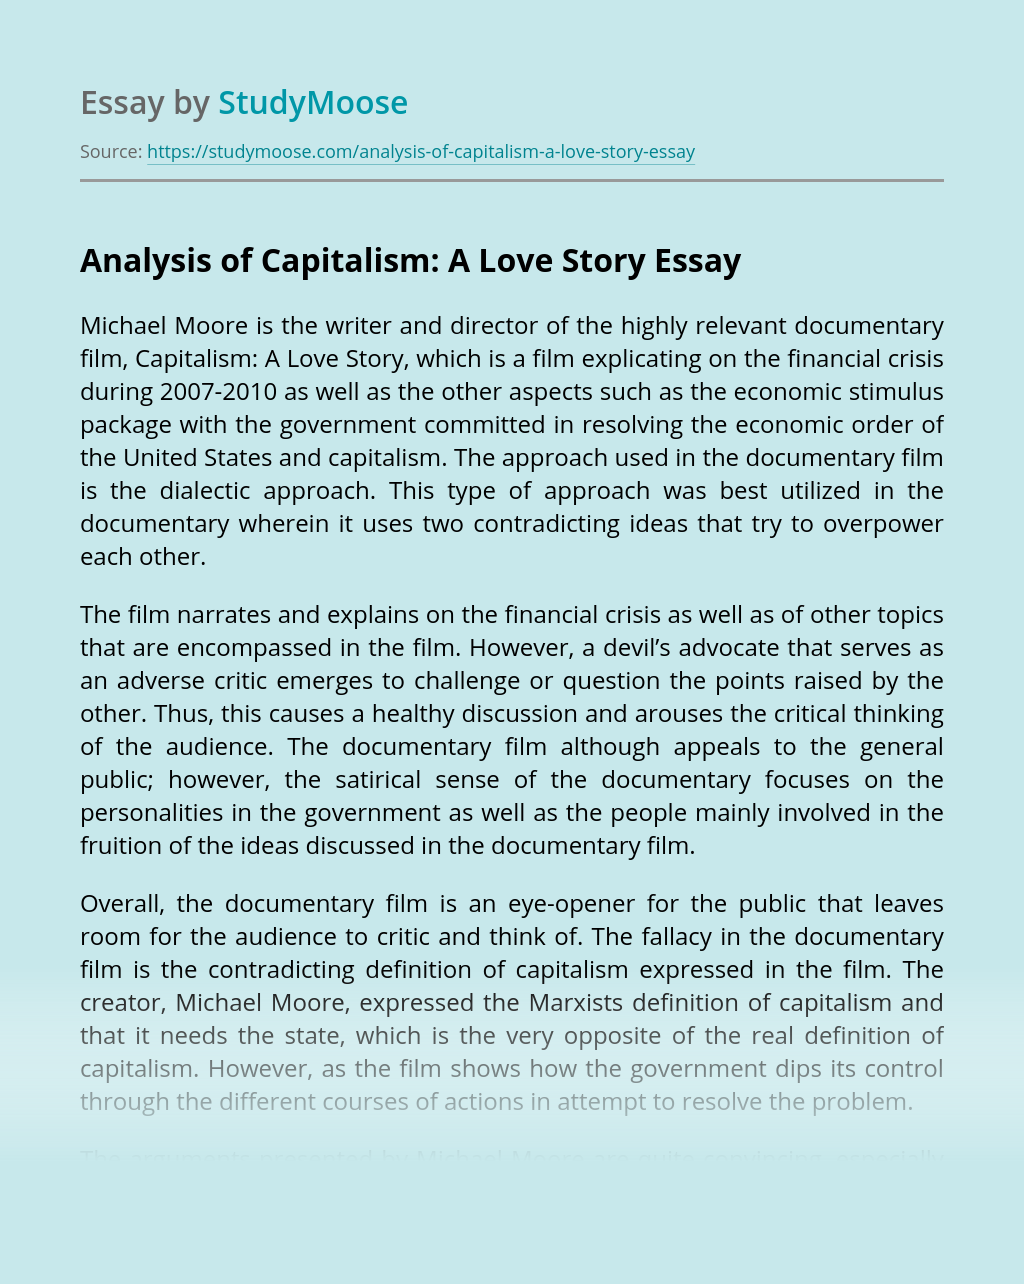 Analysis of Capitalism: A Love Story